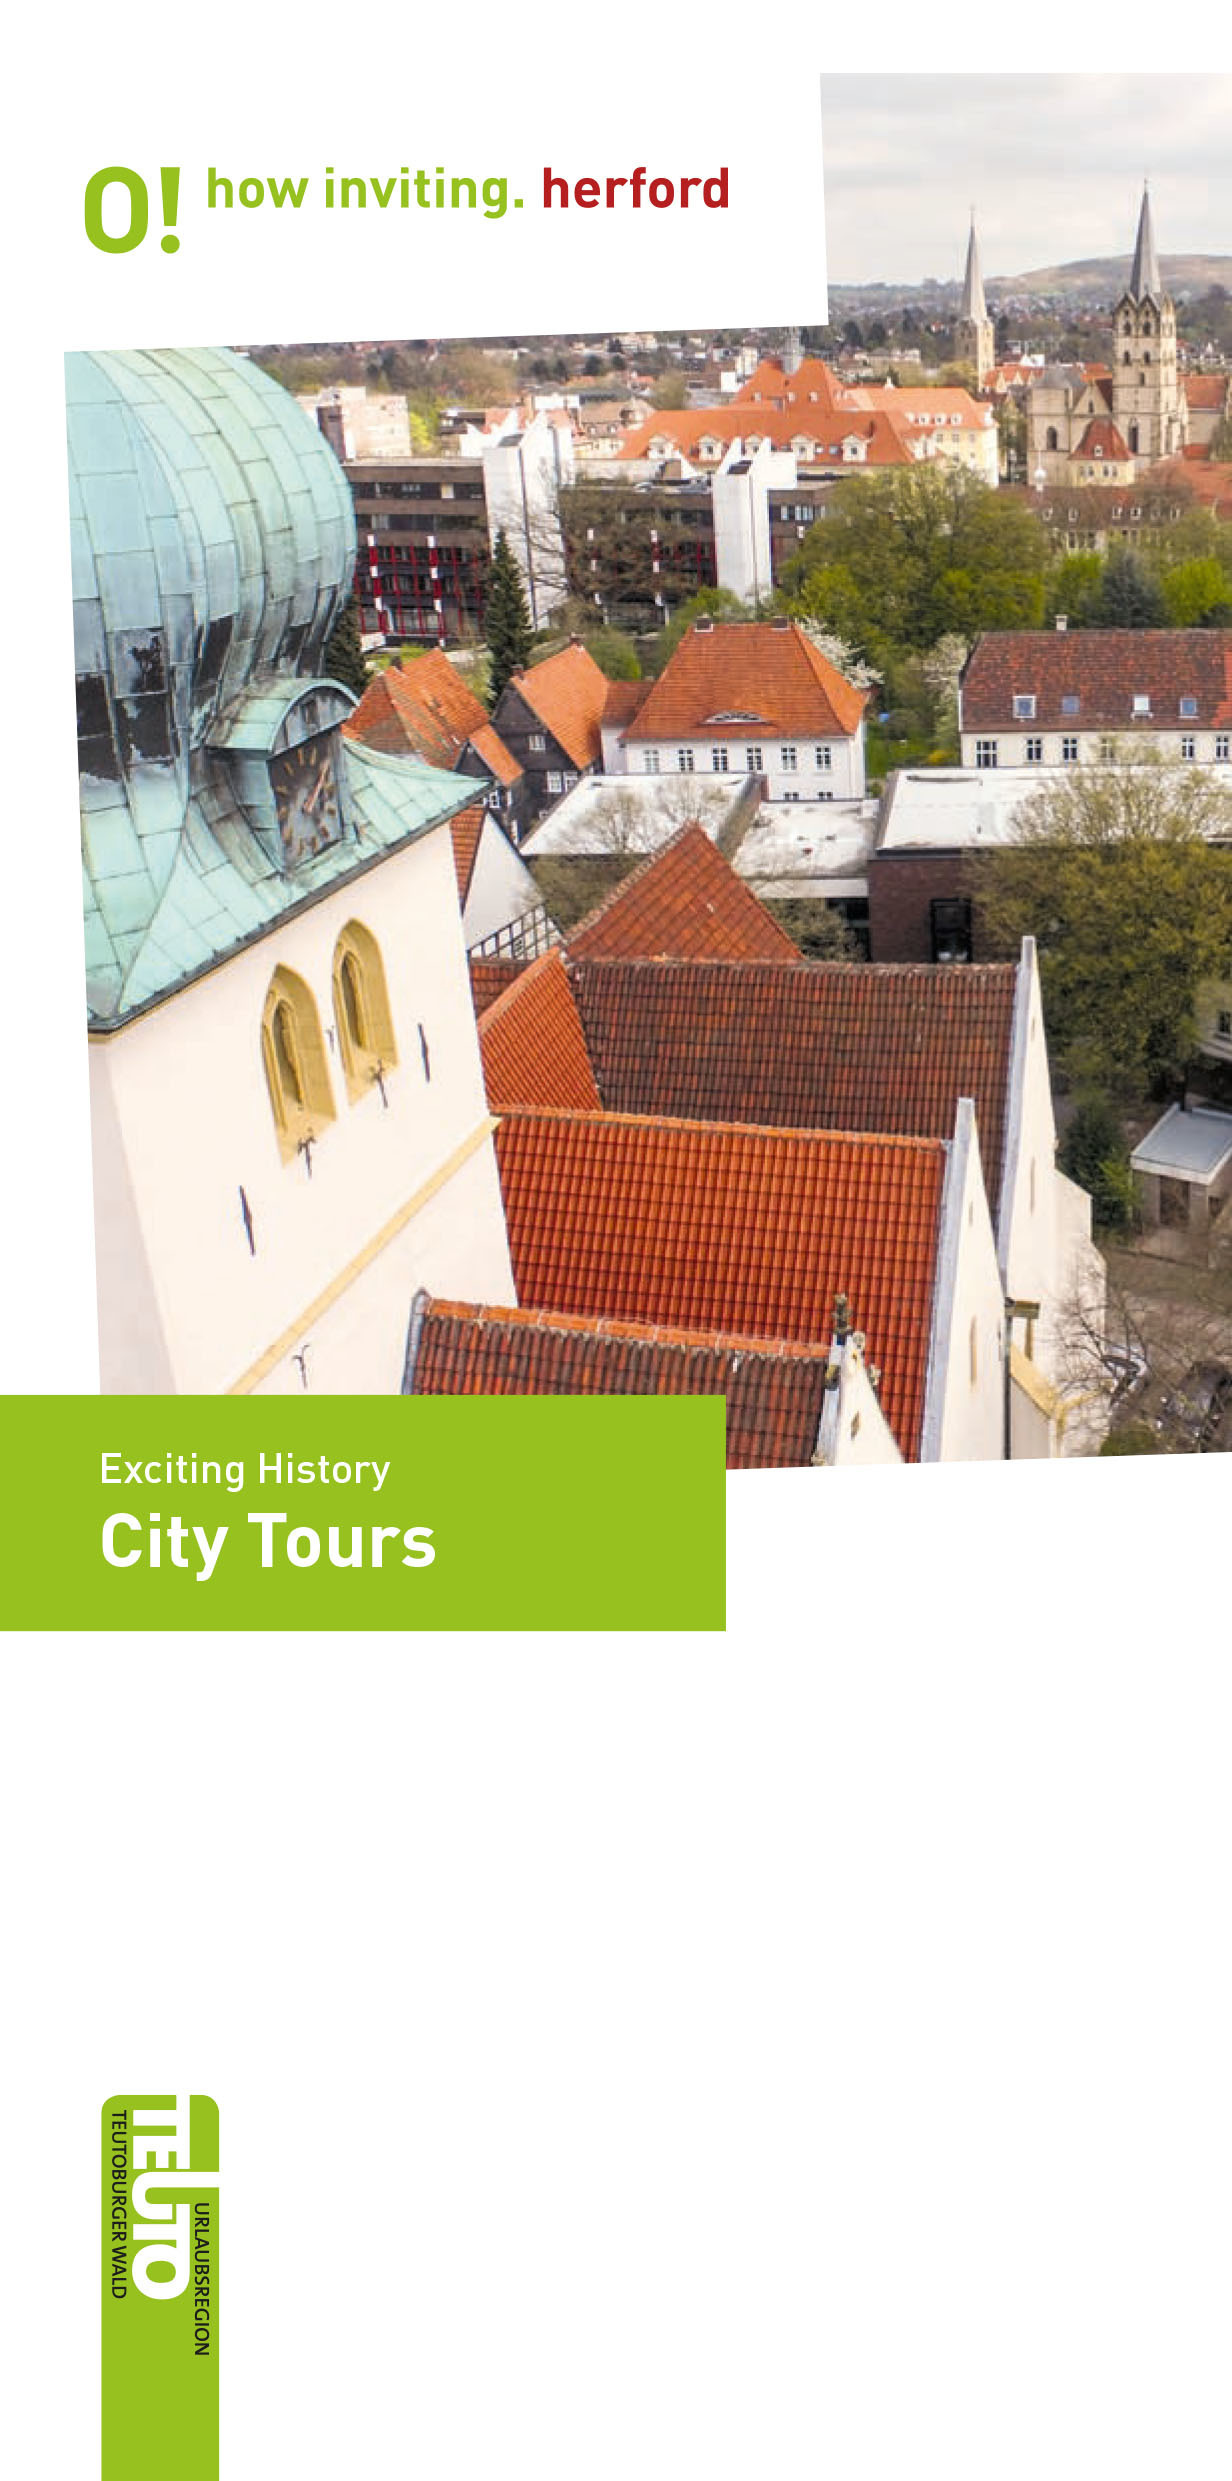 Bild vergrößern: Exciting History - City Tours